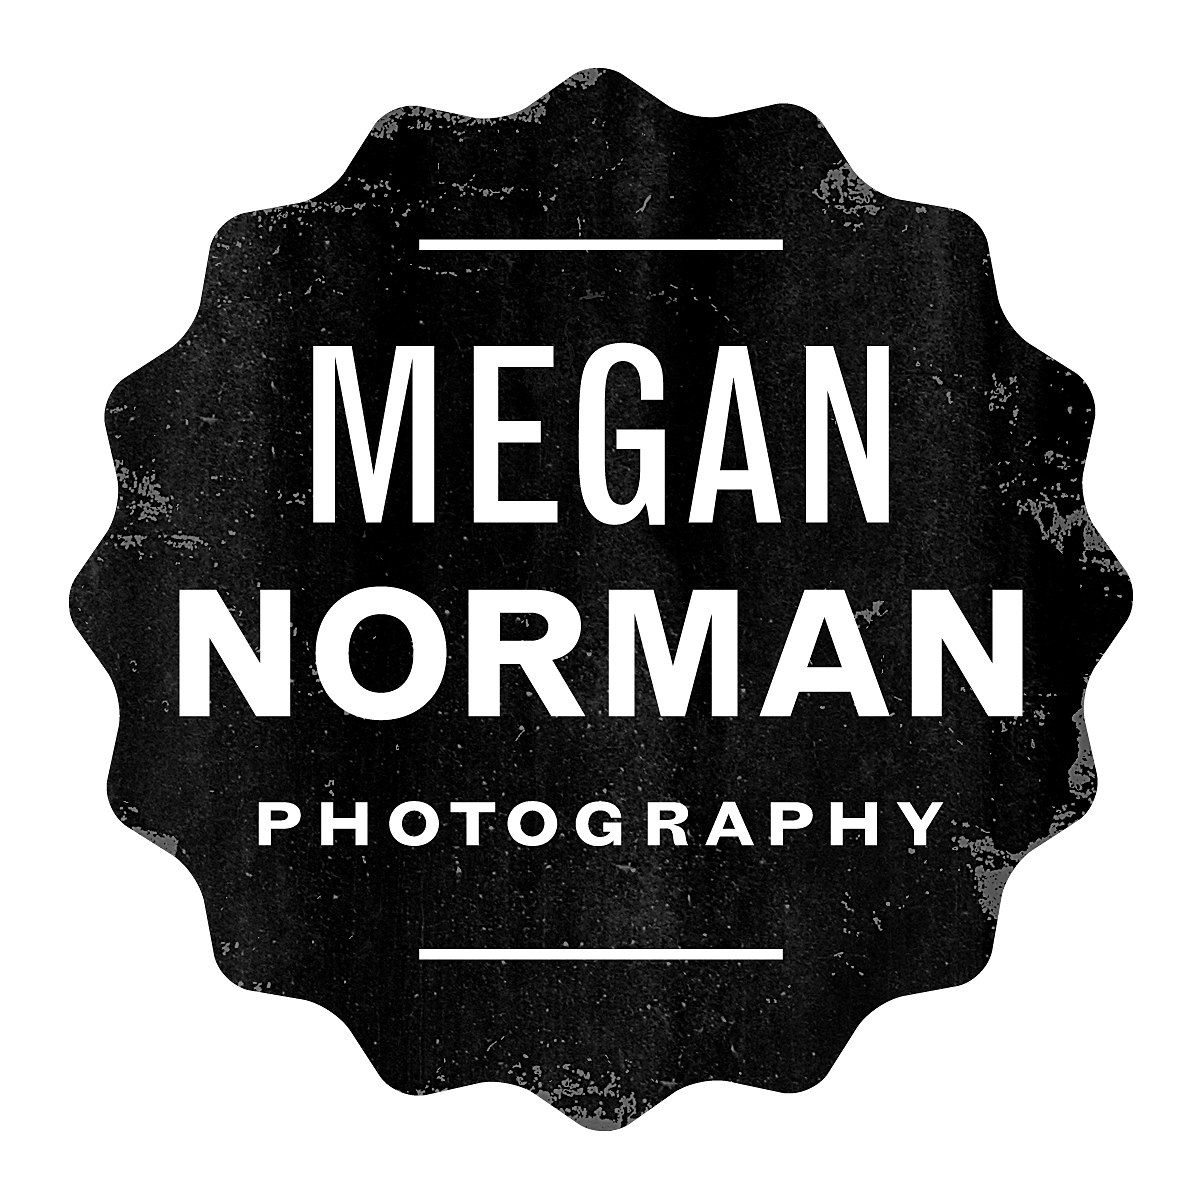 MEGAN NORMAN PHOTOGRAPHY